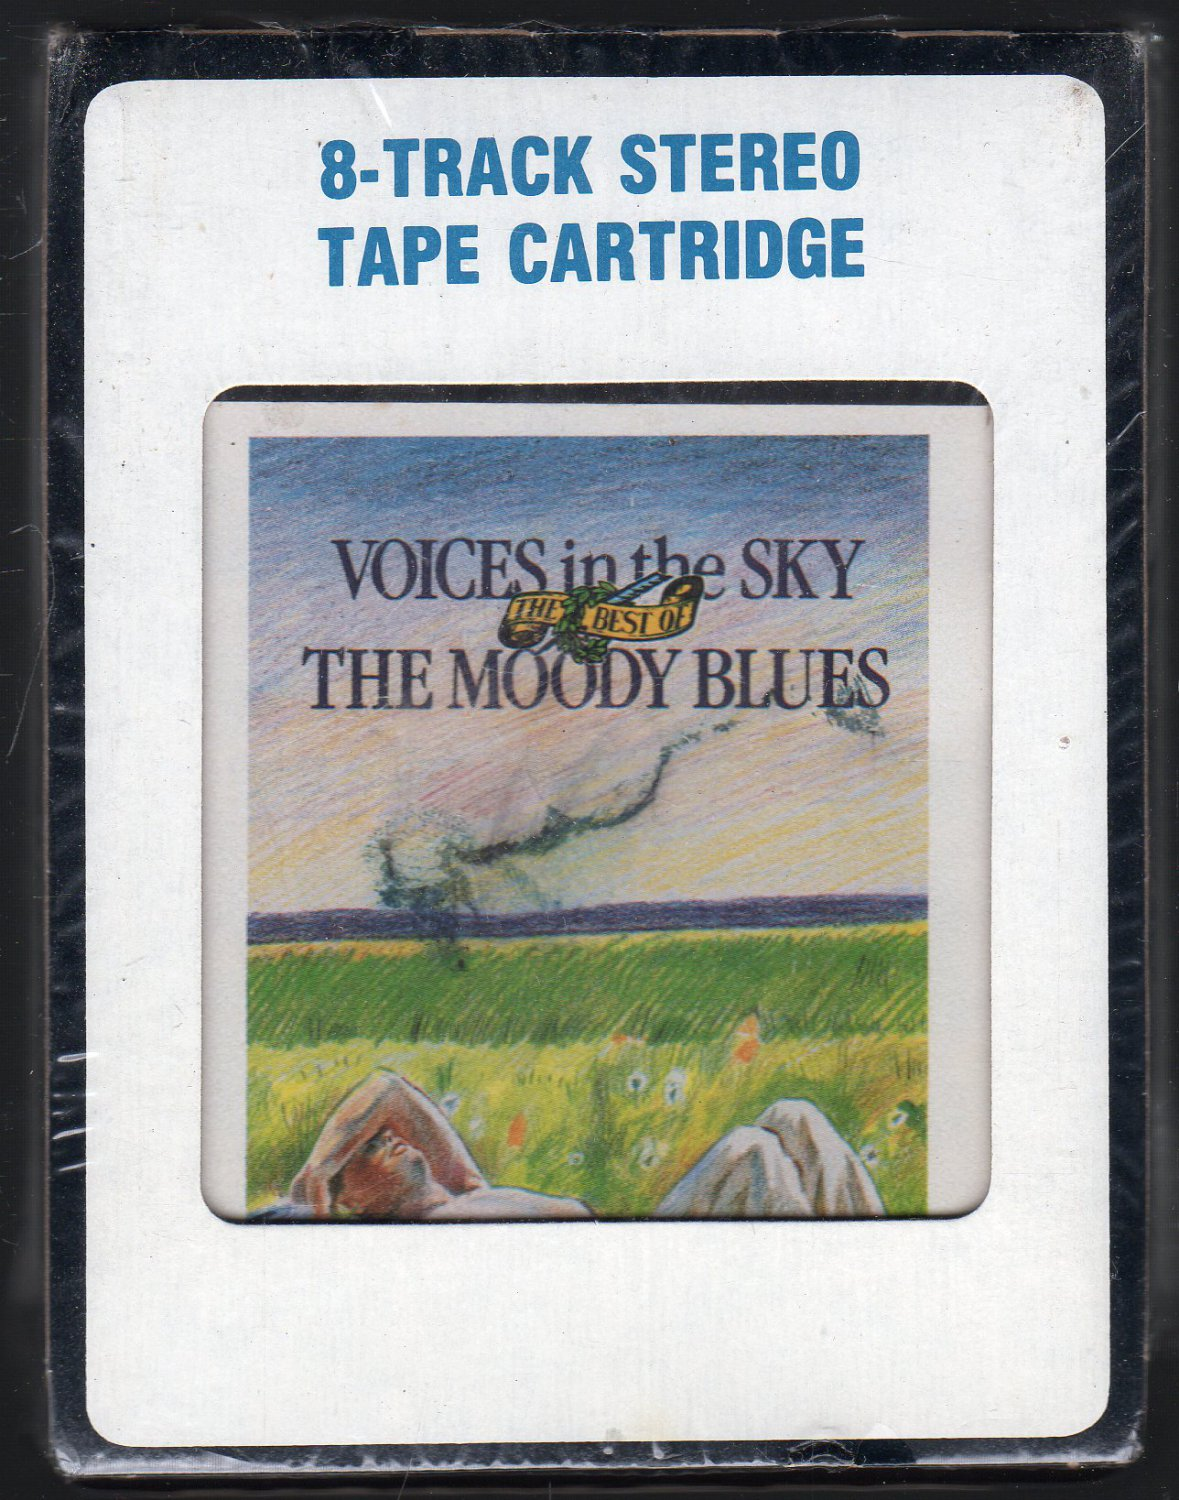 The Moody Blues - Voices In The Sky The Best Of 1985 CRC A26 8-TRACK TAPE